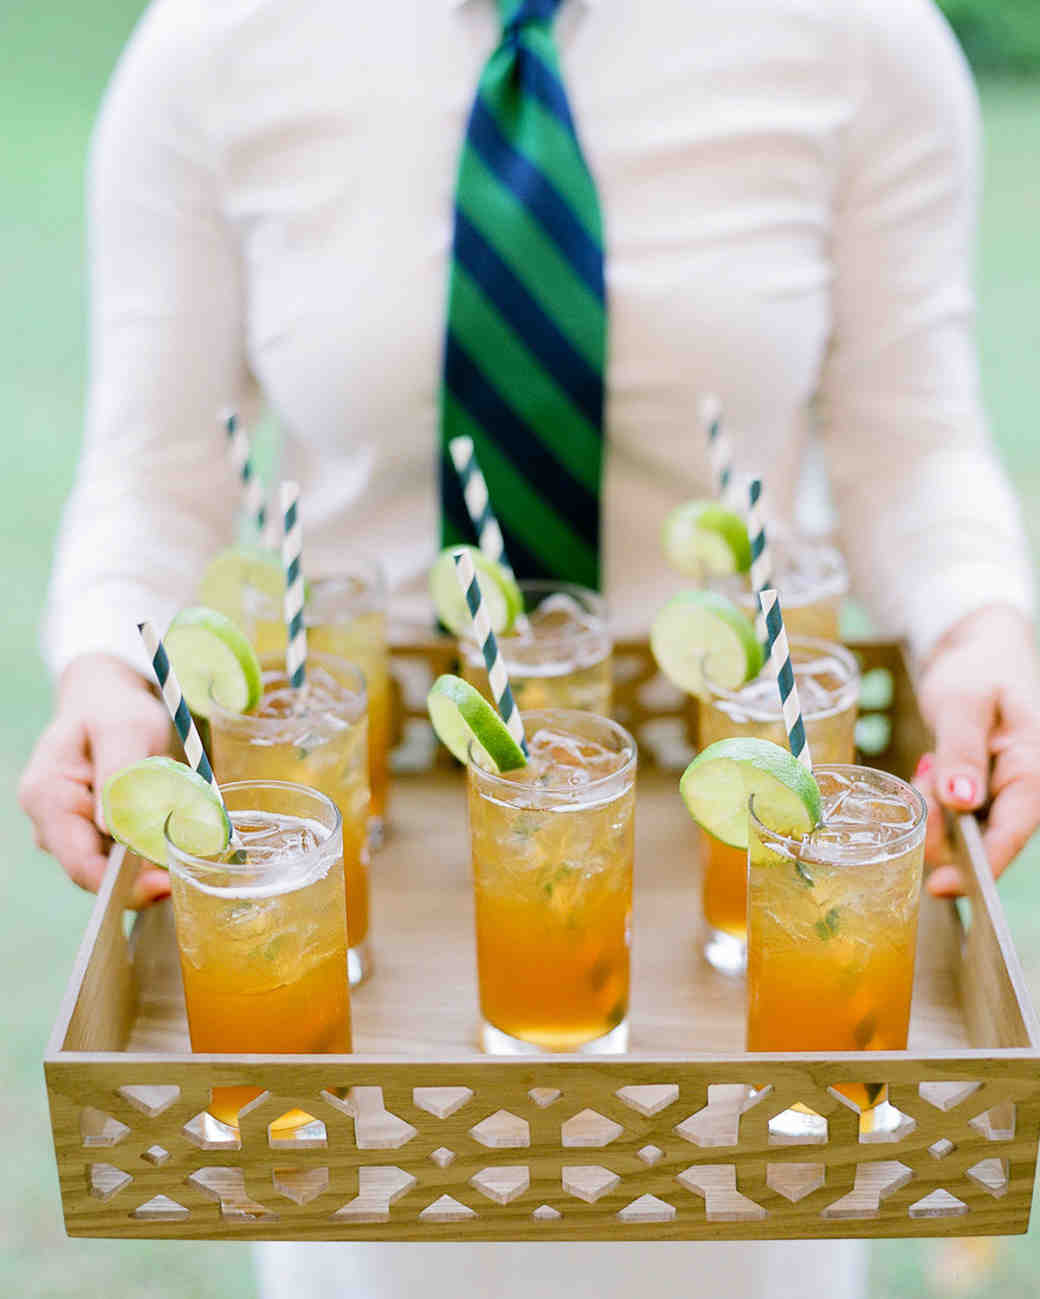 iced tea on tray